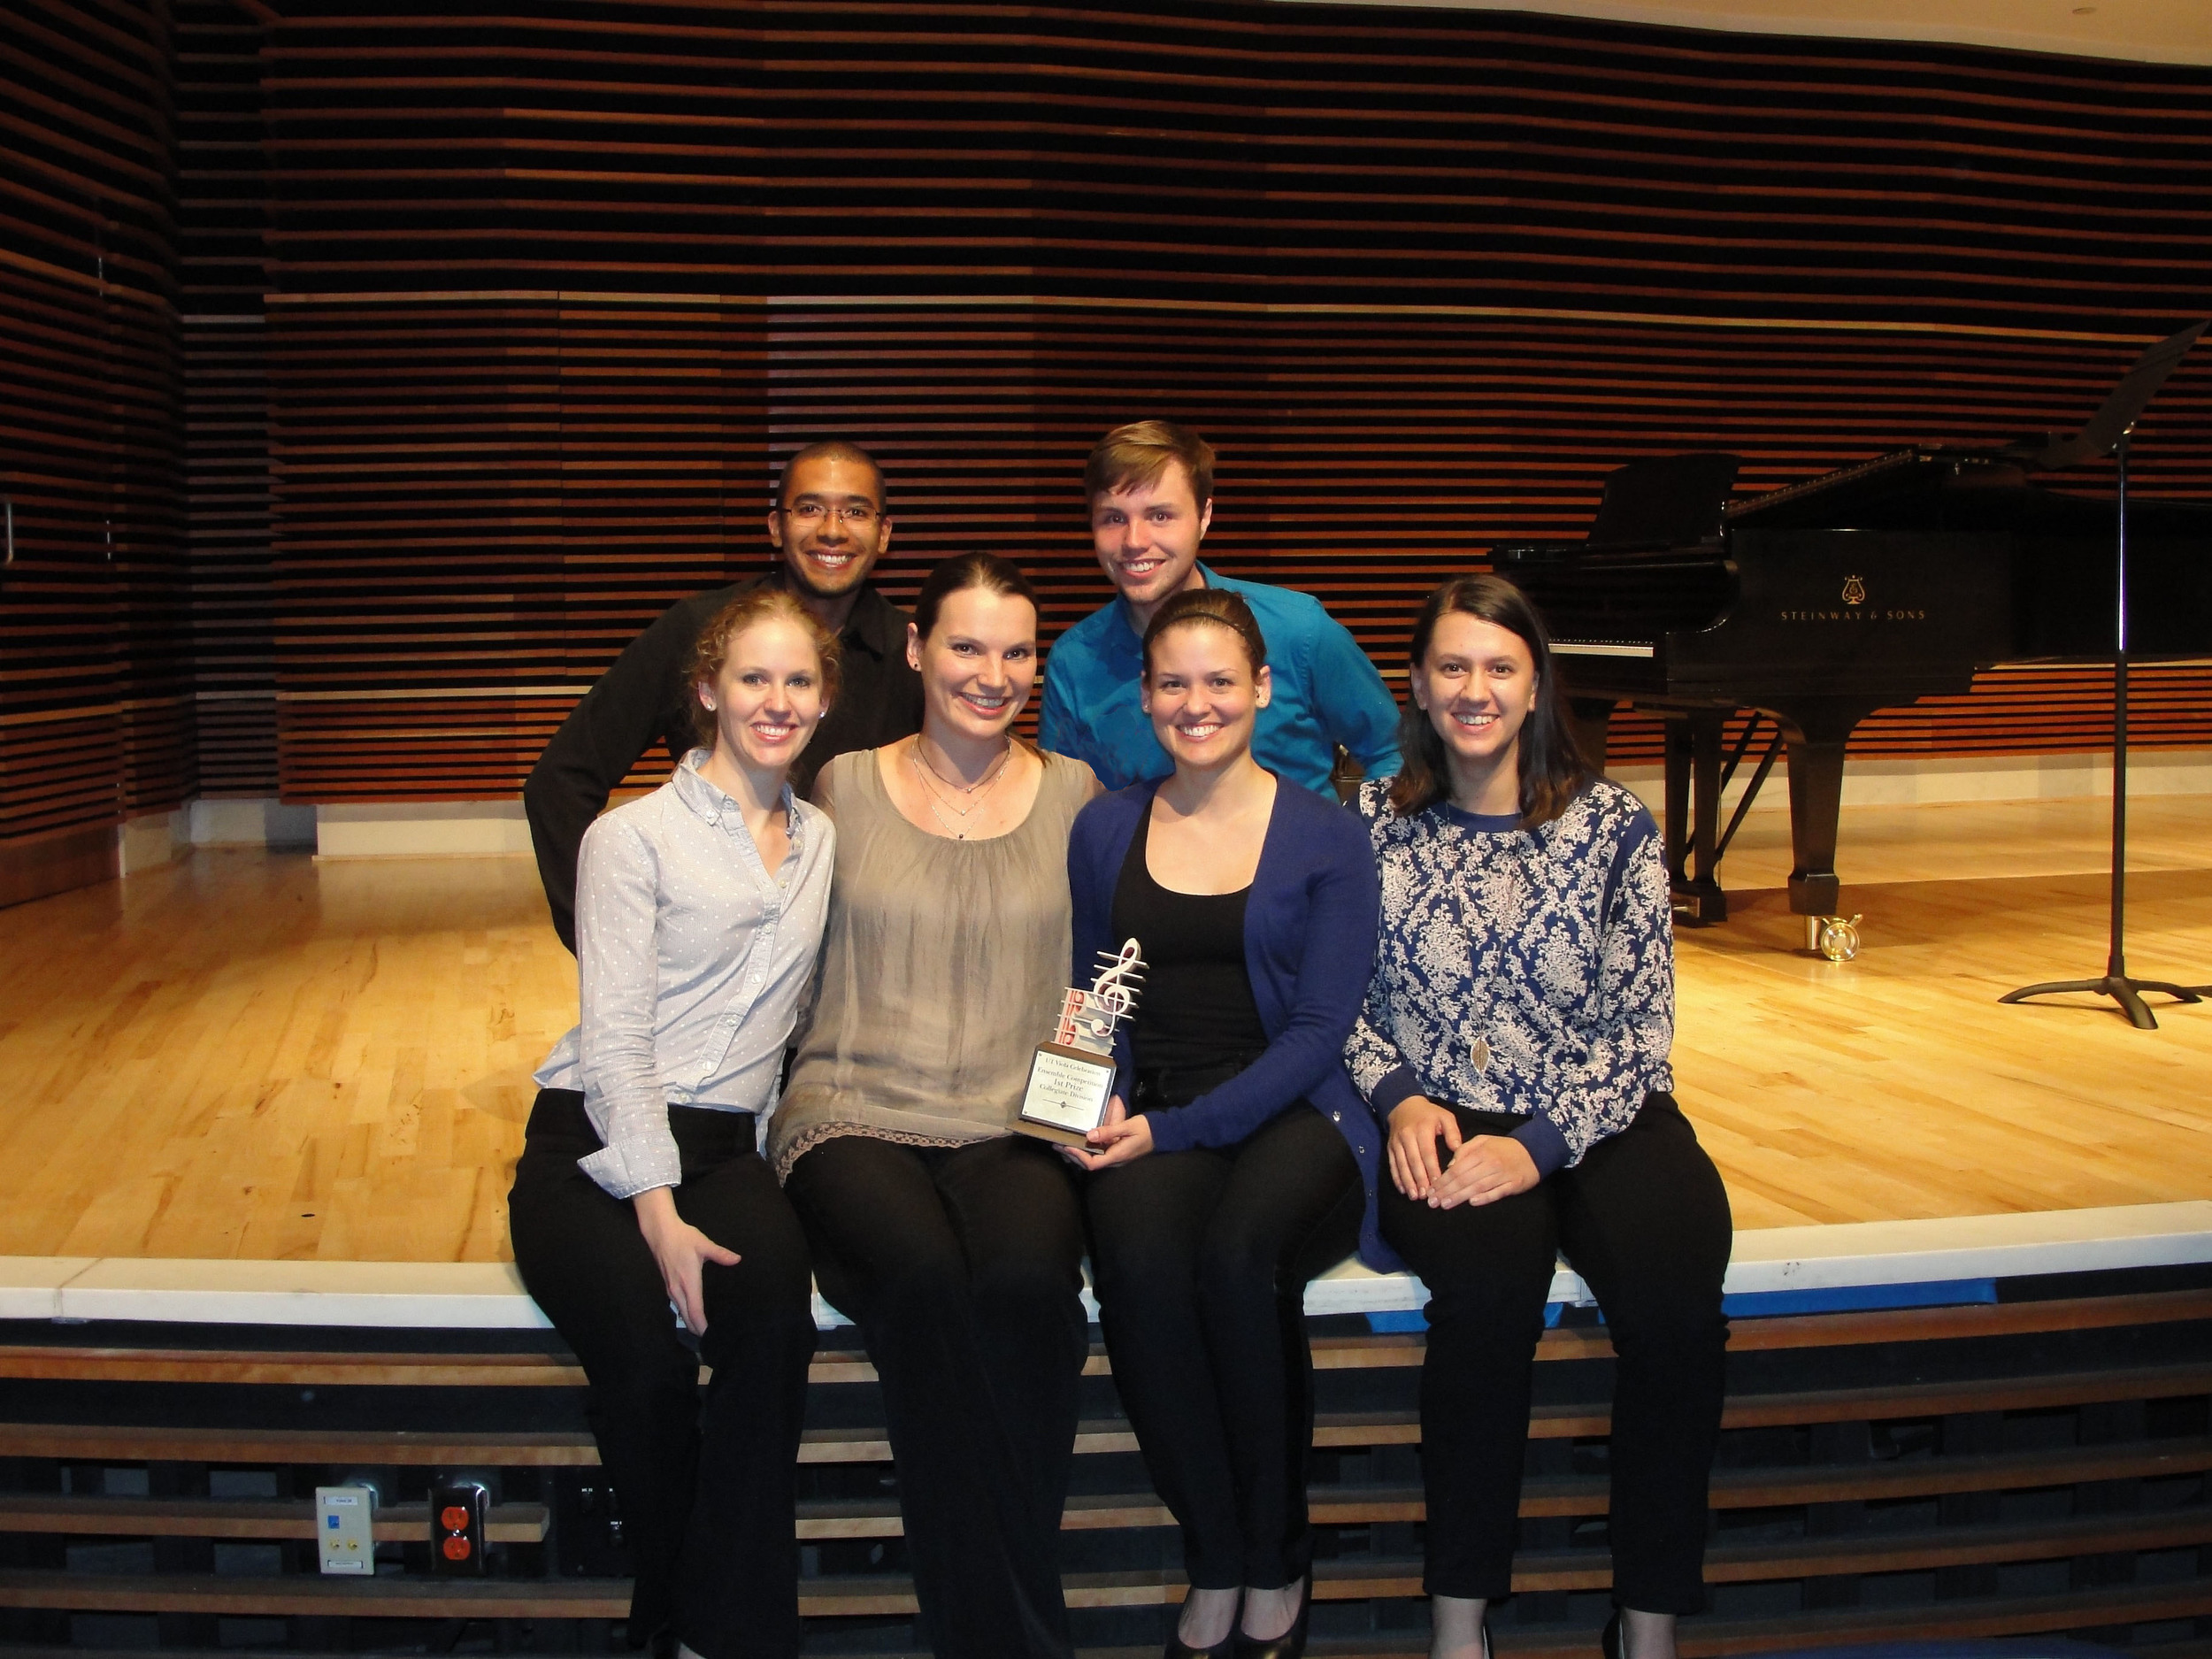 My award winning students! University of Tennessee Viola Celebration 2015: Collegiate Level Ensemble, First Place.